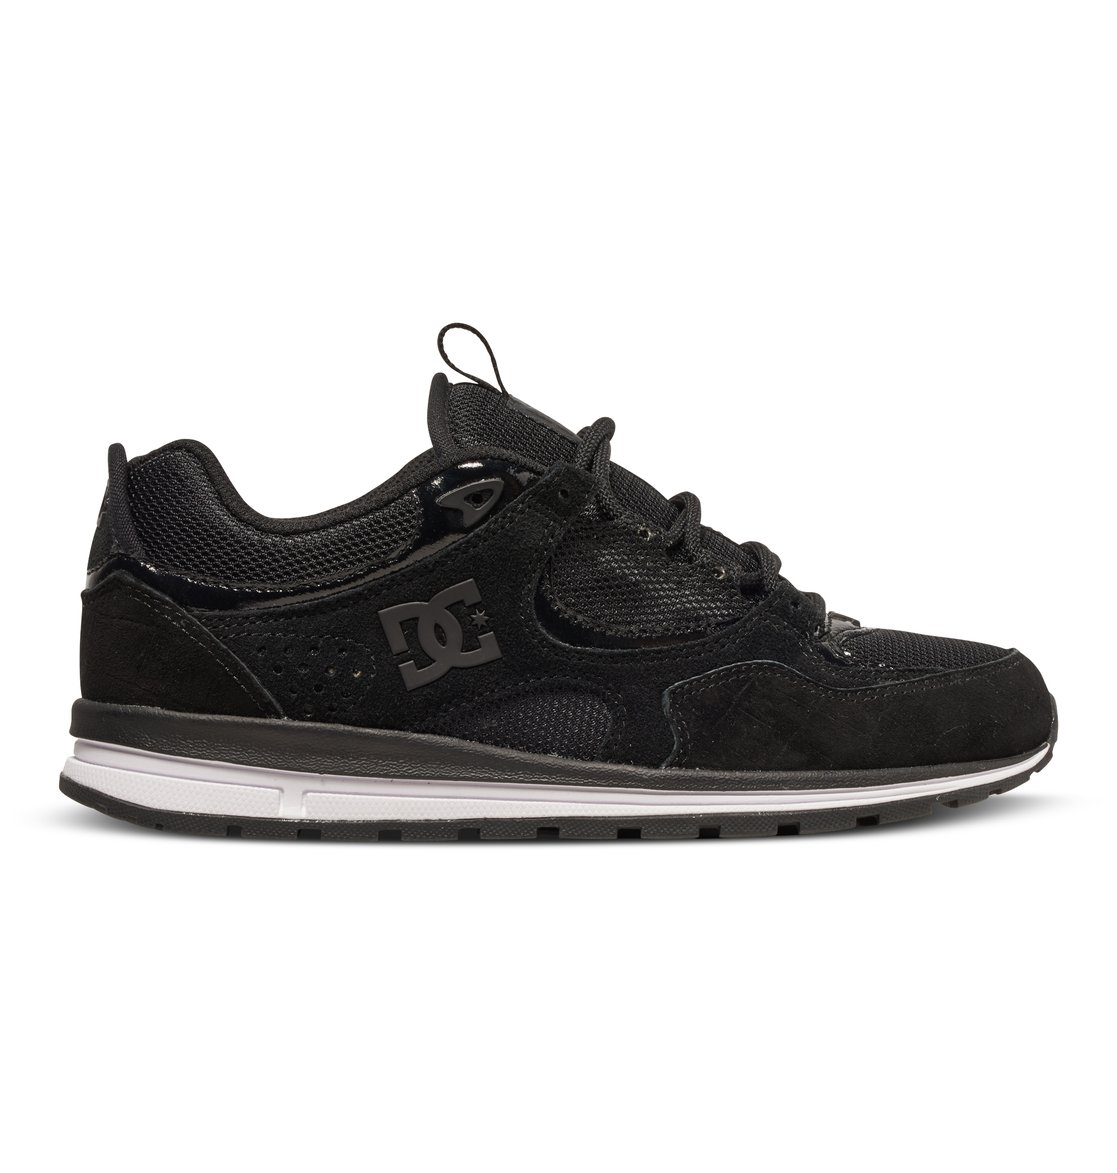 Baskets basses DC shoes Kalis Lite